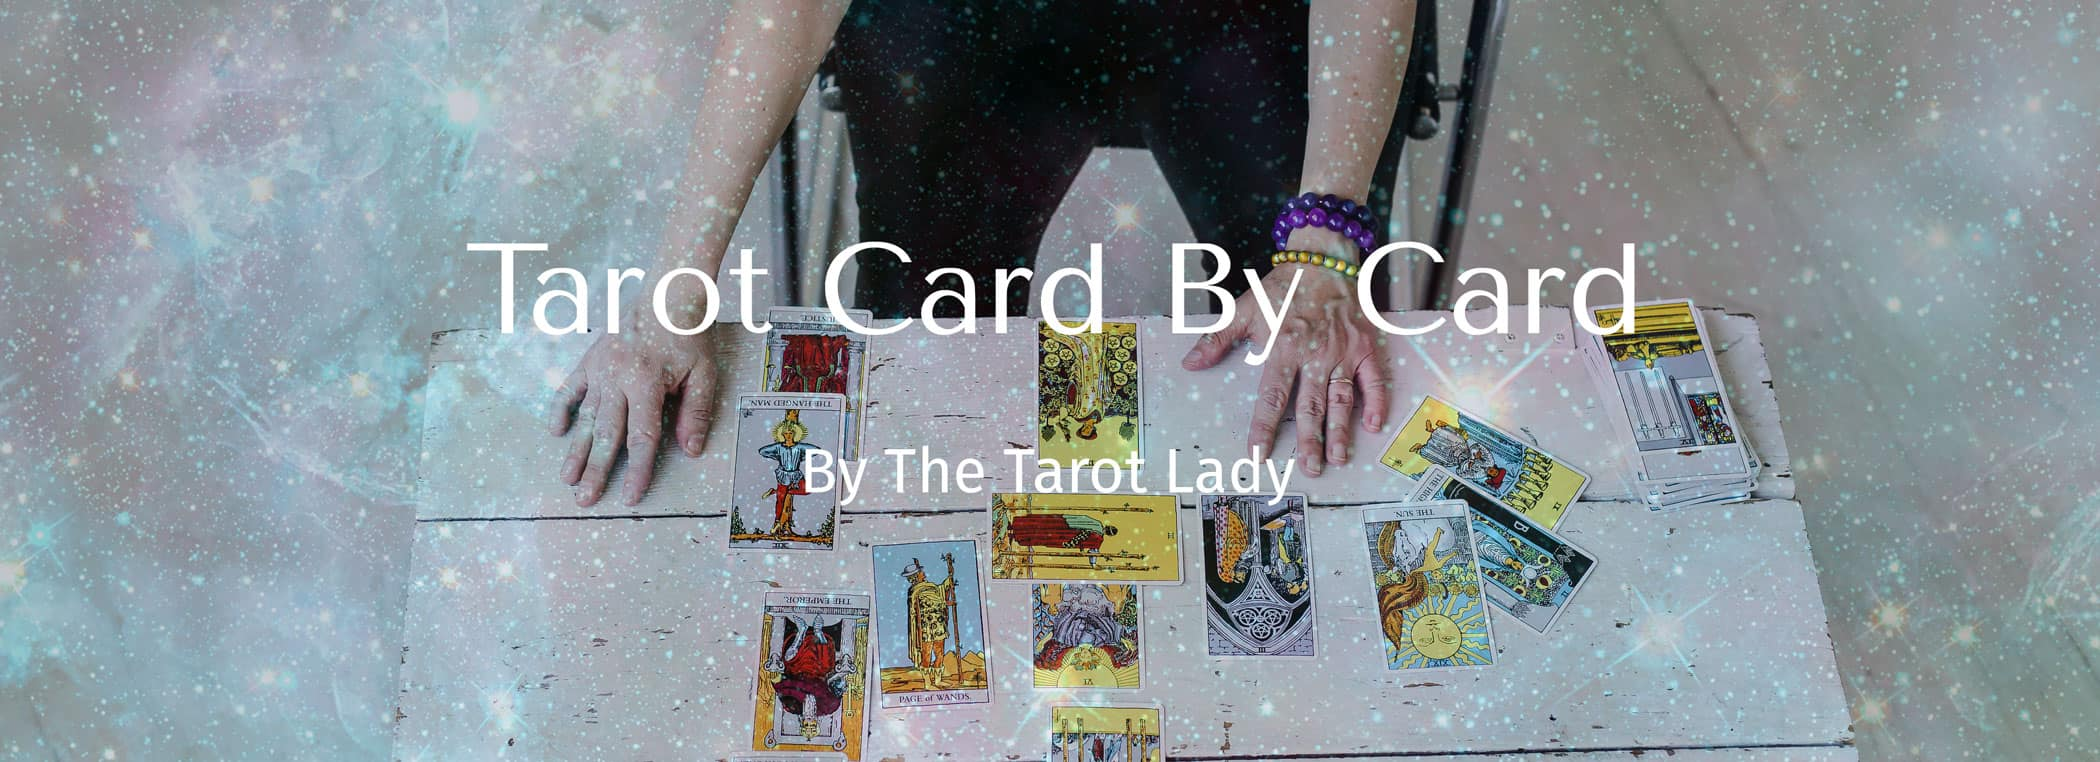 Tarot Card by Card - Learn tarot card meanings